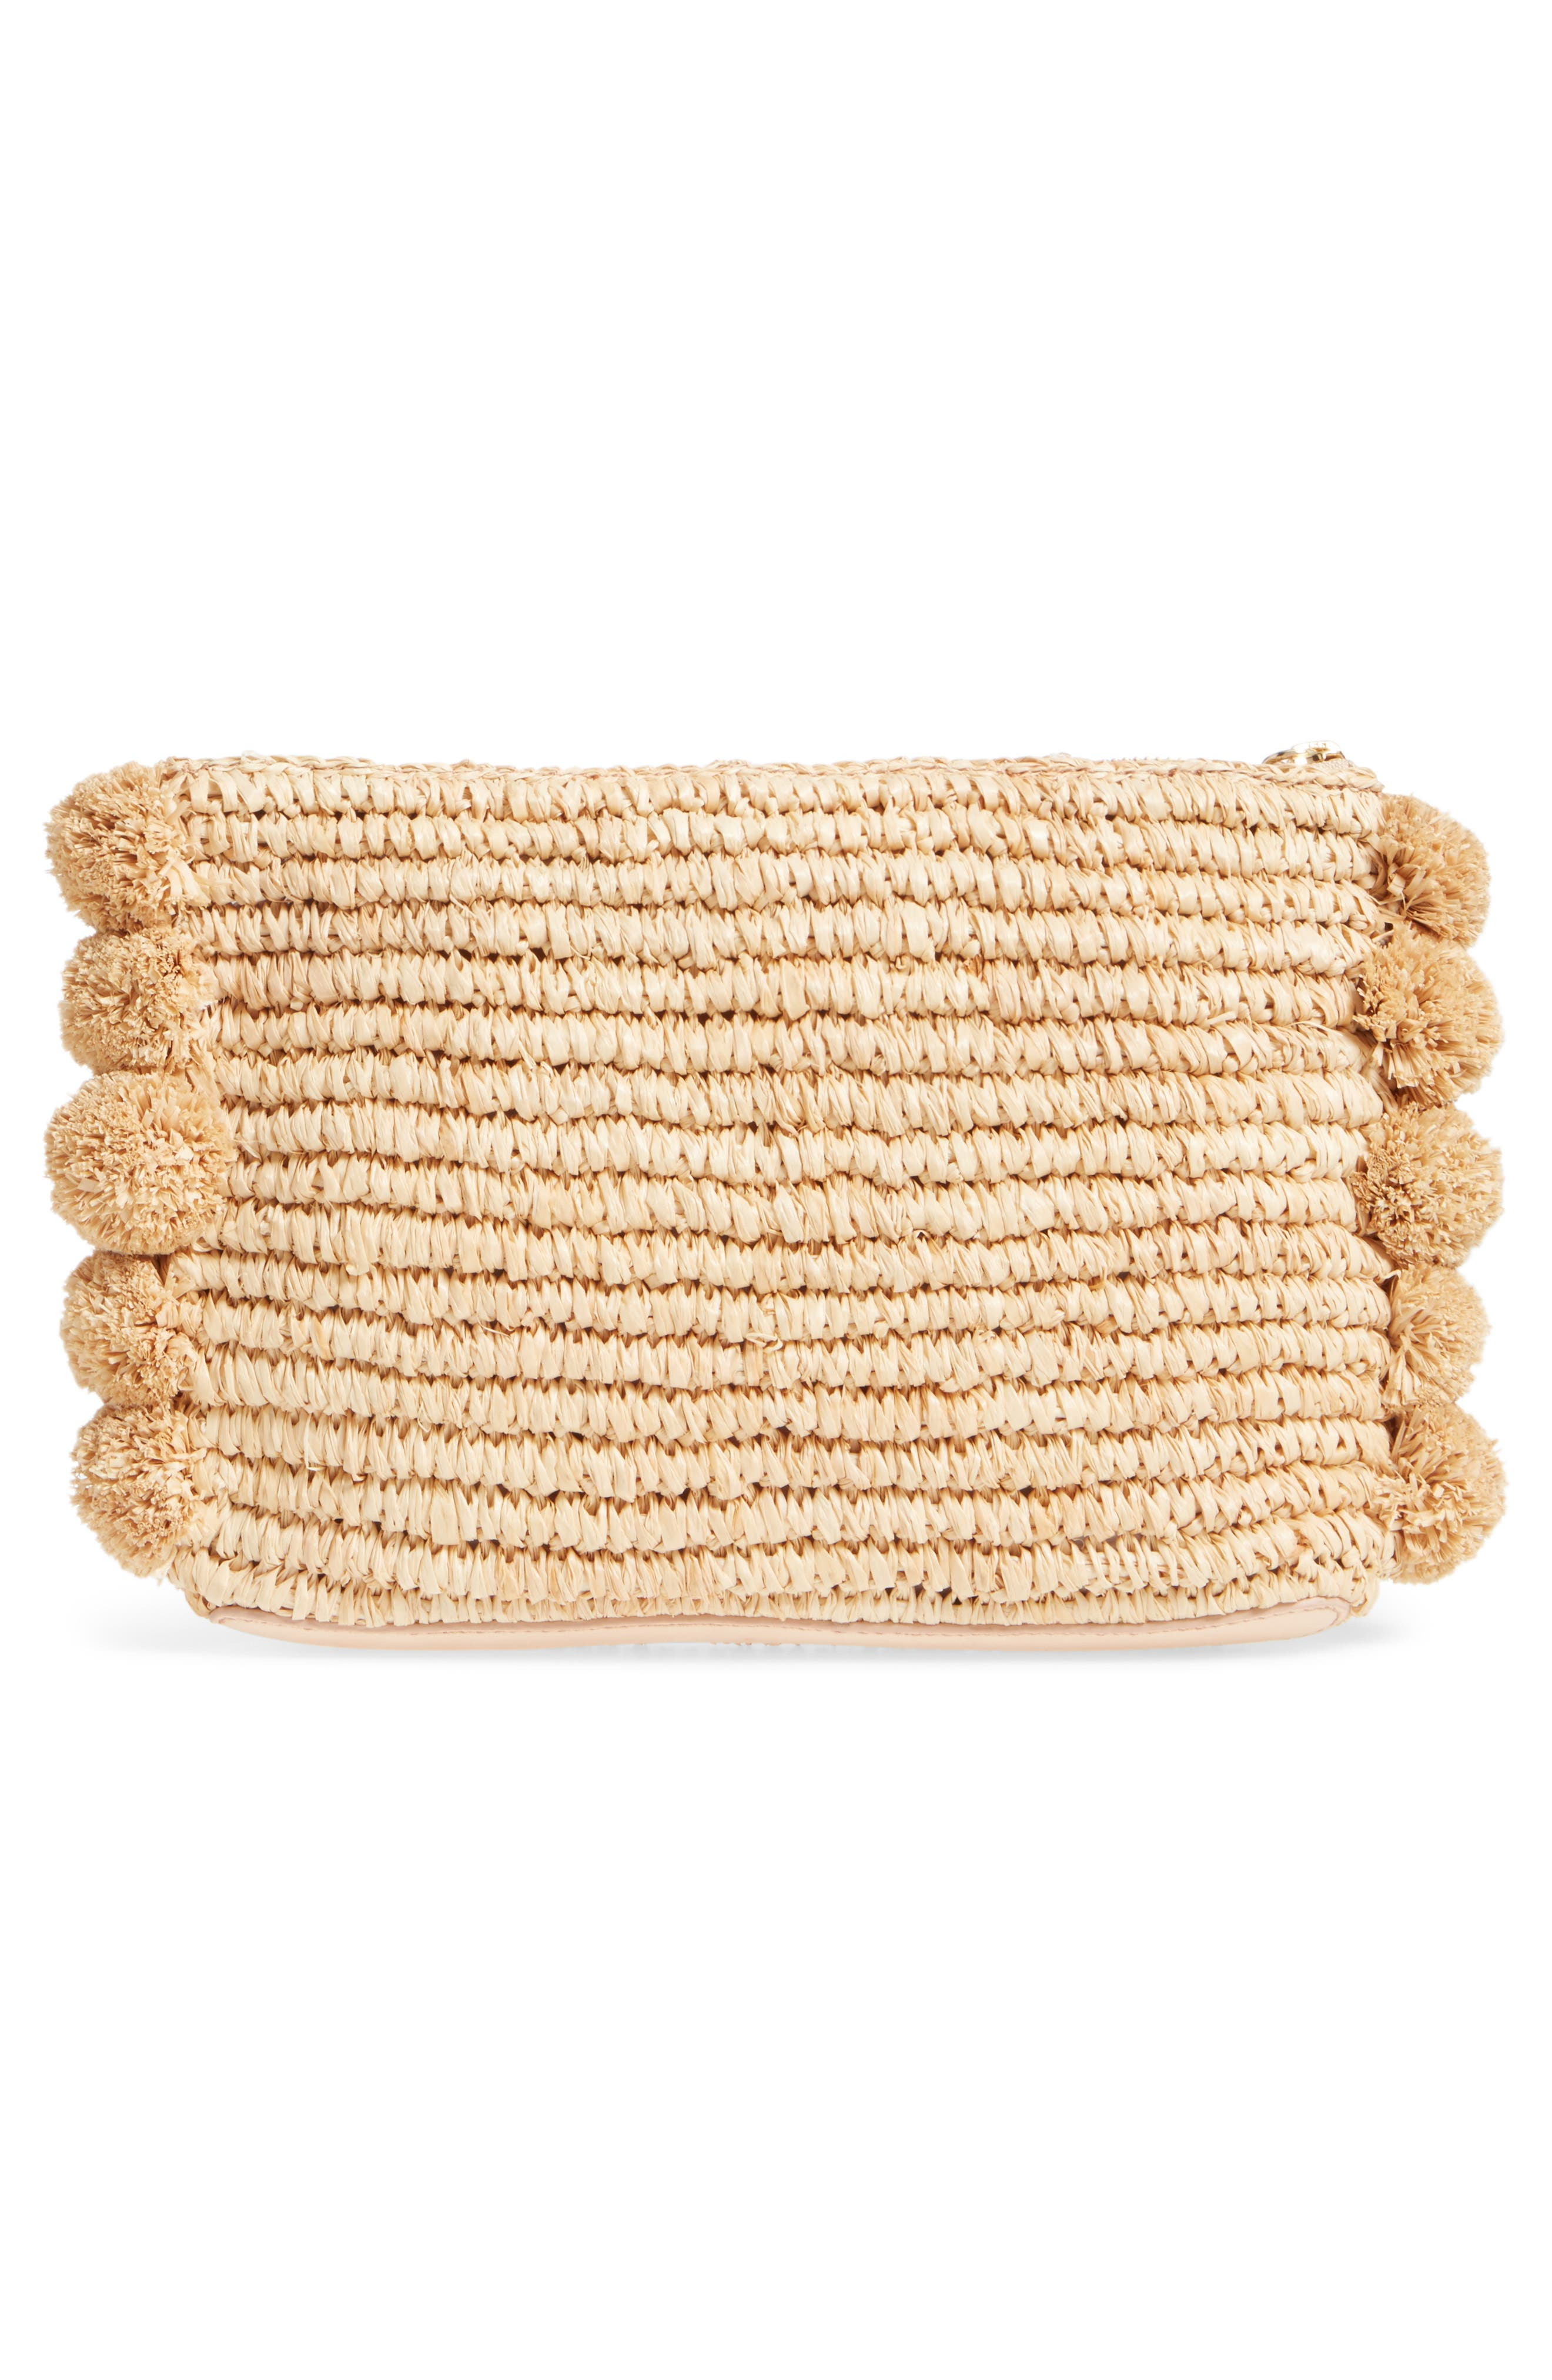 Straw Tassel Pouch,                             Alternate thumbnail 3, color,                             Natural